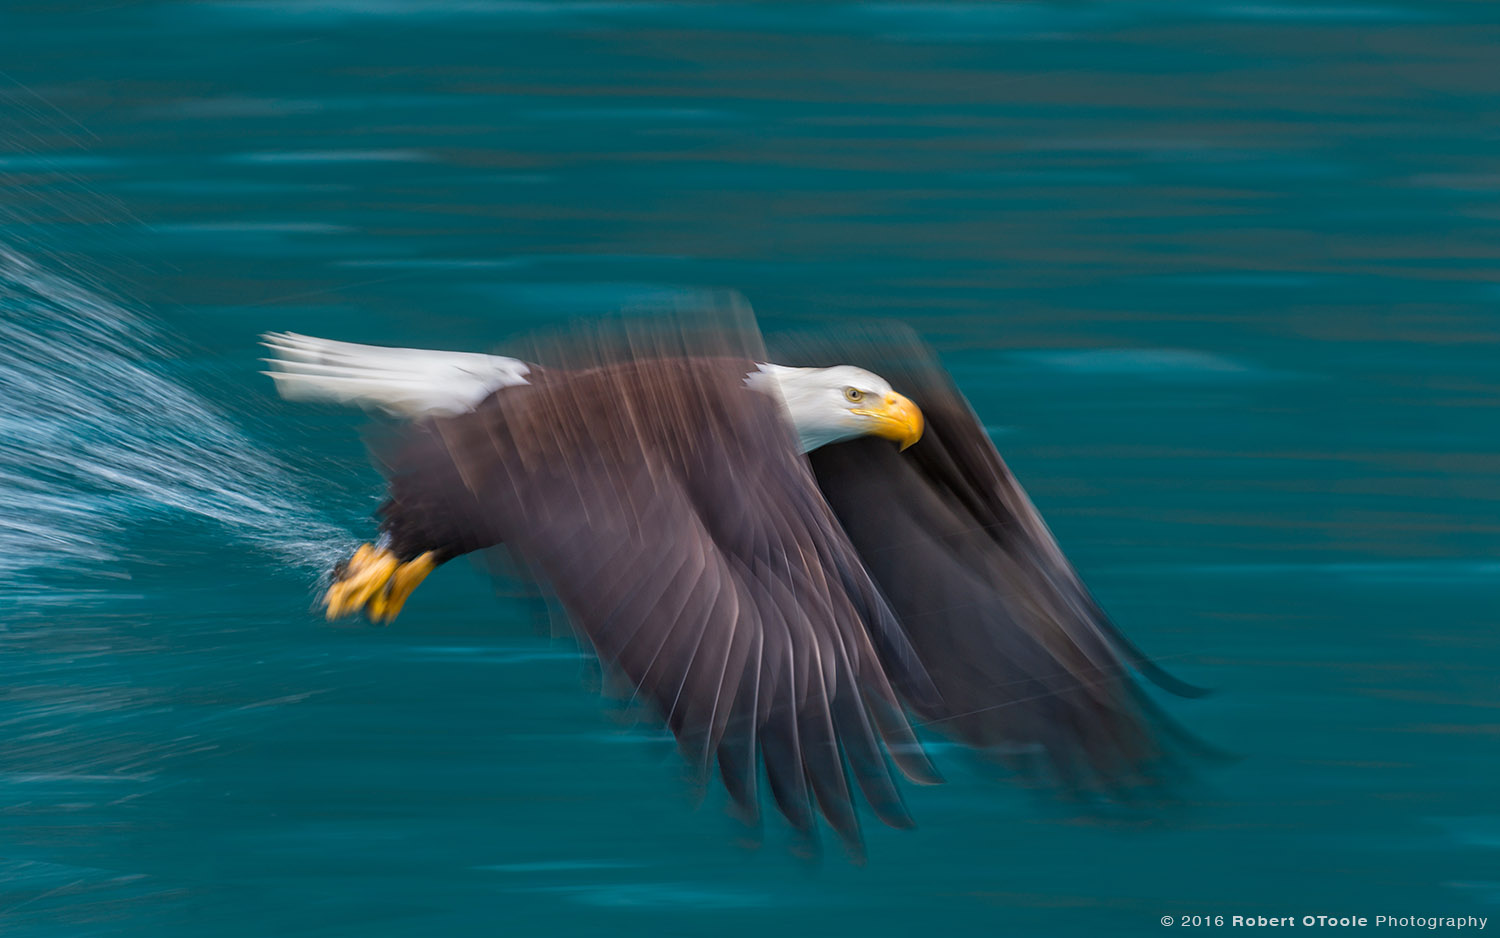 Bald Eagle Flying against Jade Green Water at 1/40th s